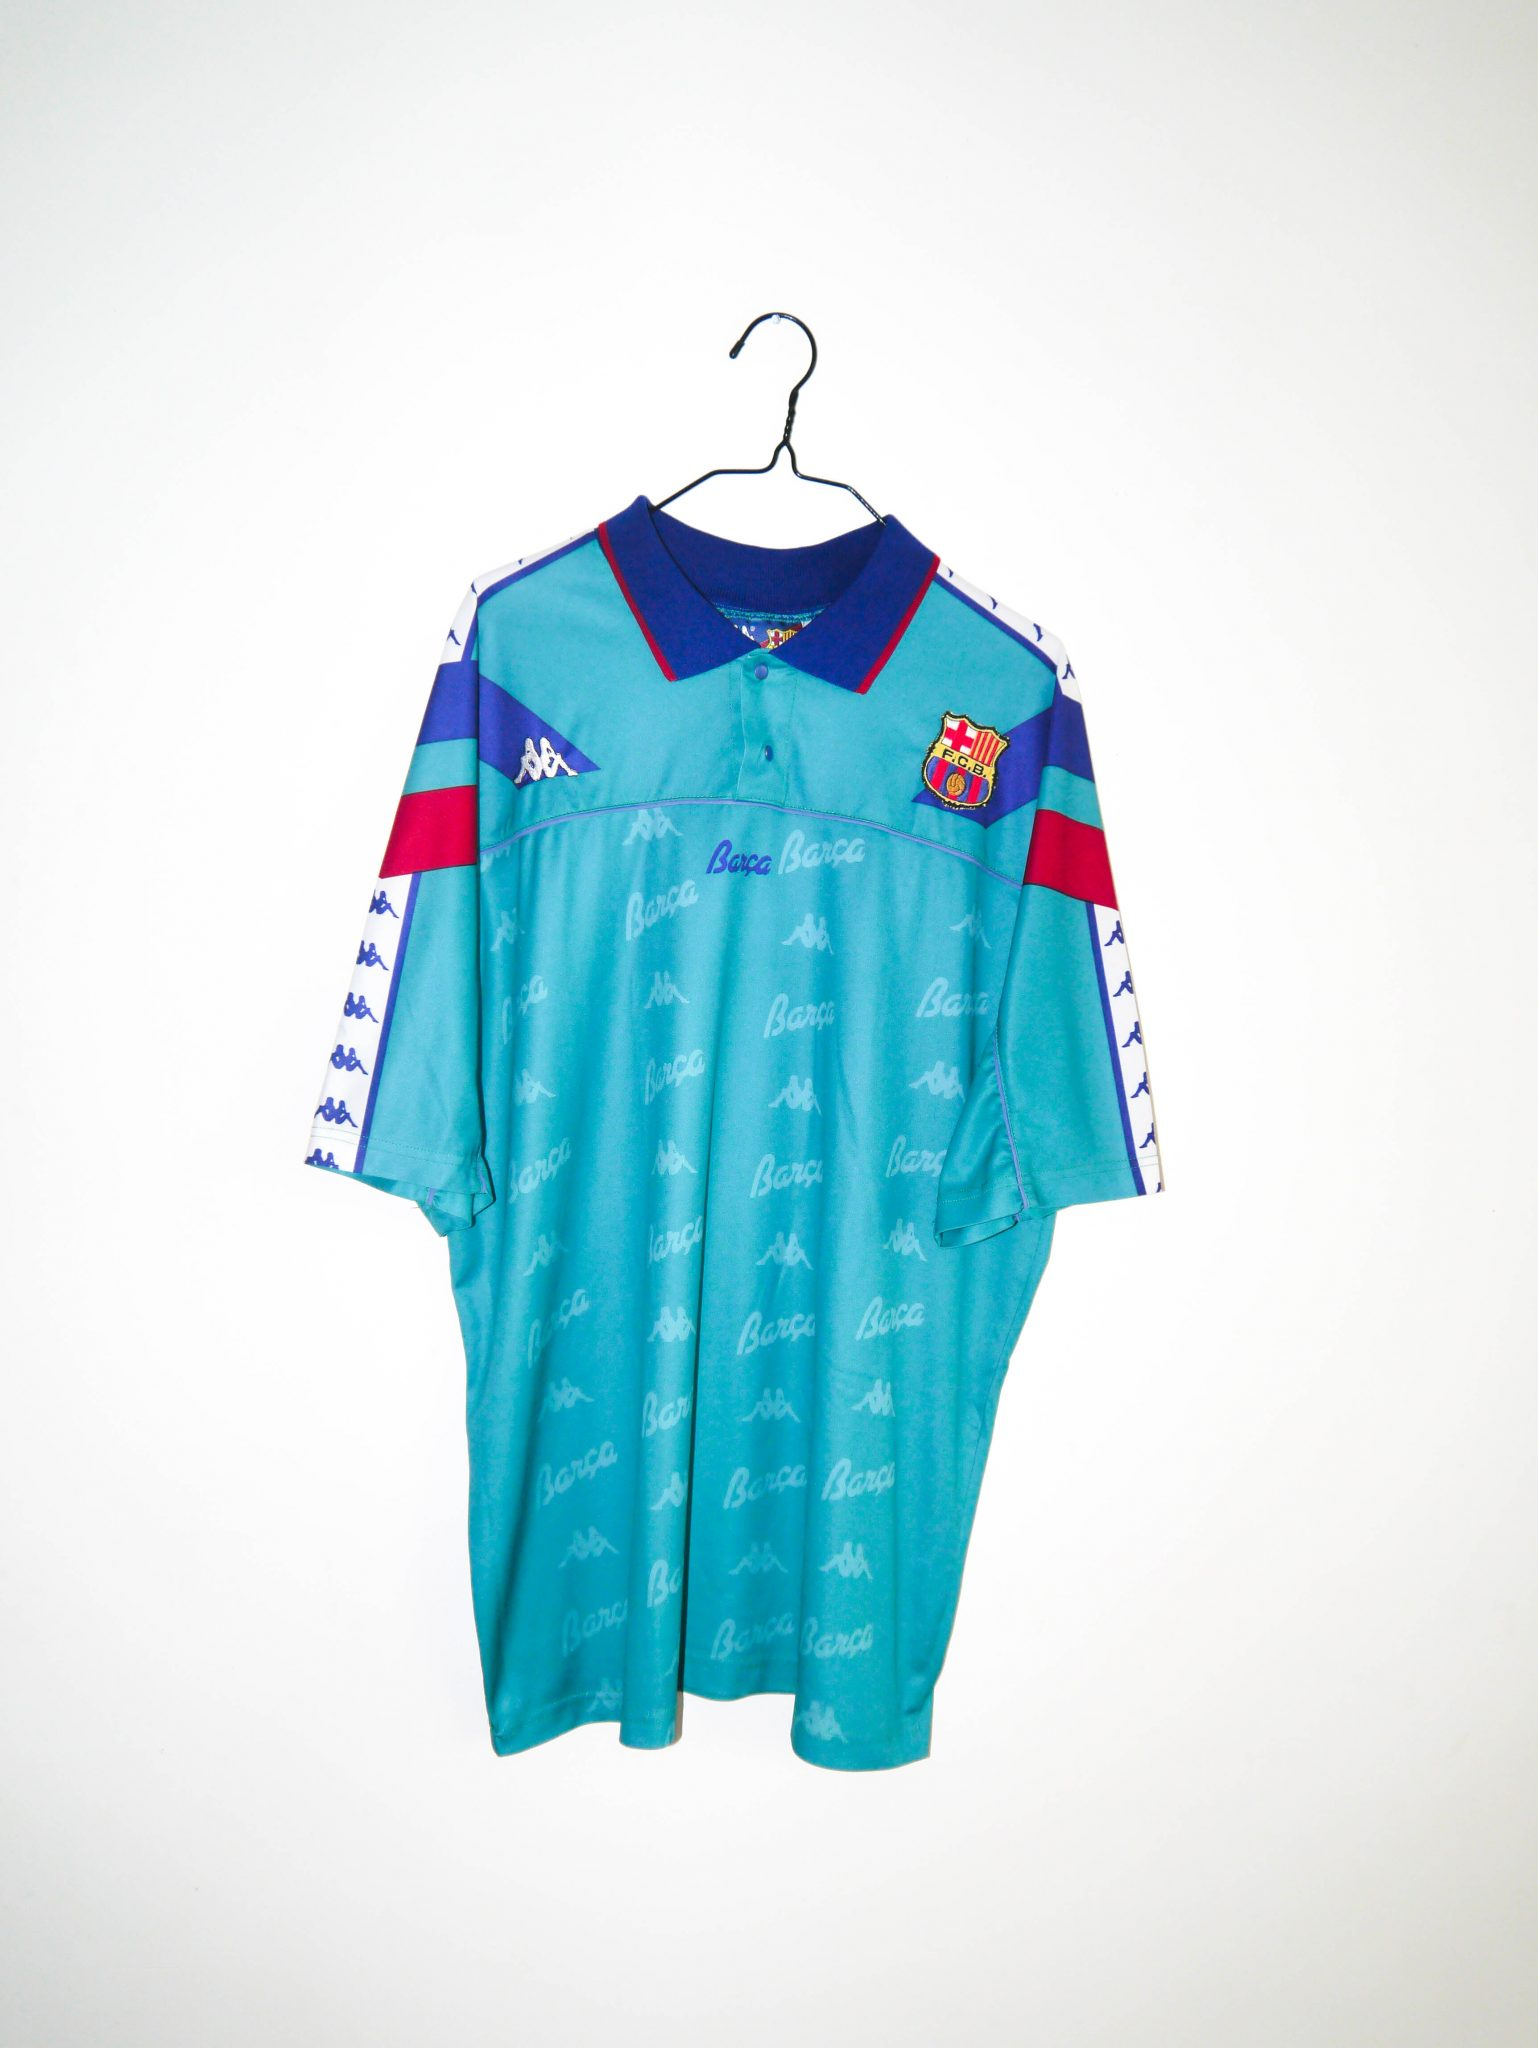 5227c70a4 Home   Shop   Spanish Clubs   FC Barcelona   Original 1992-95 FC Barcelona  away jersey + shorts – L